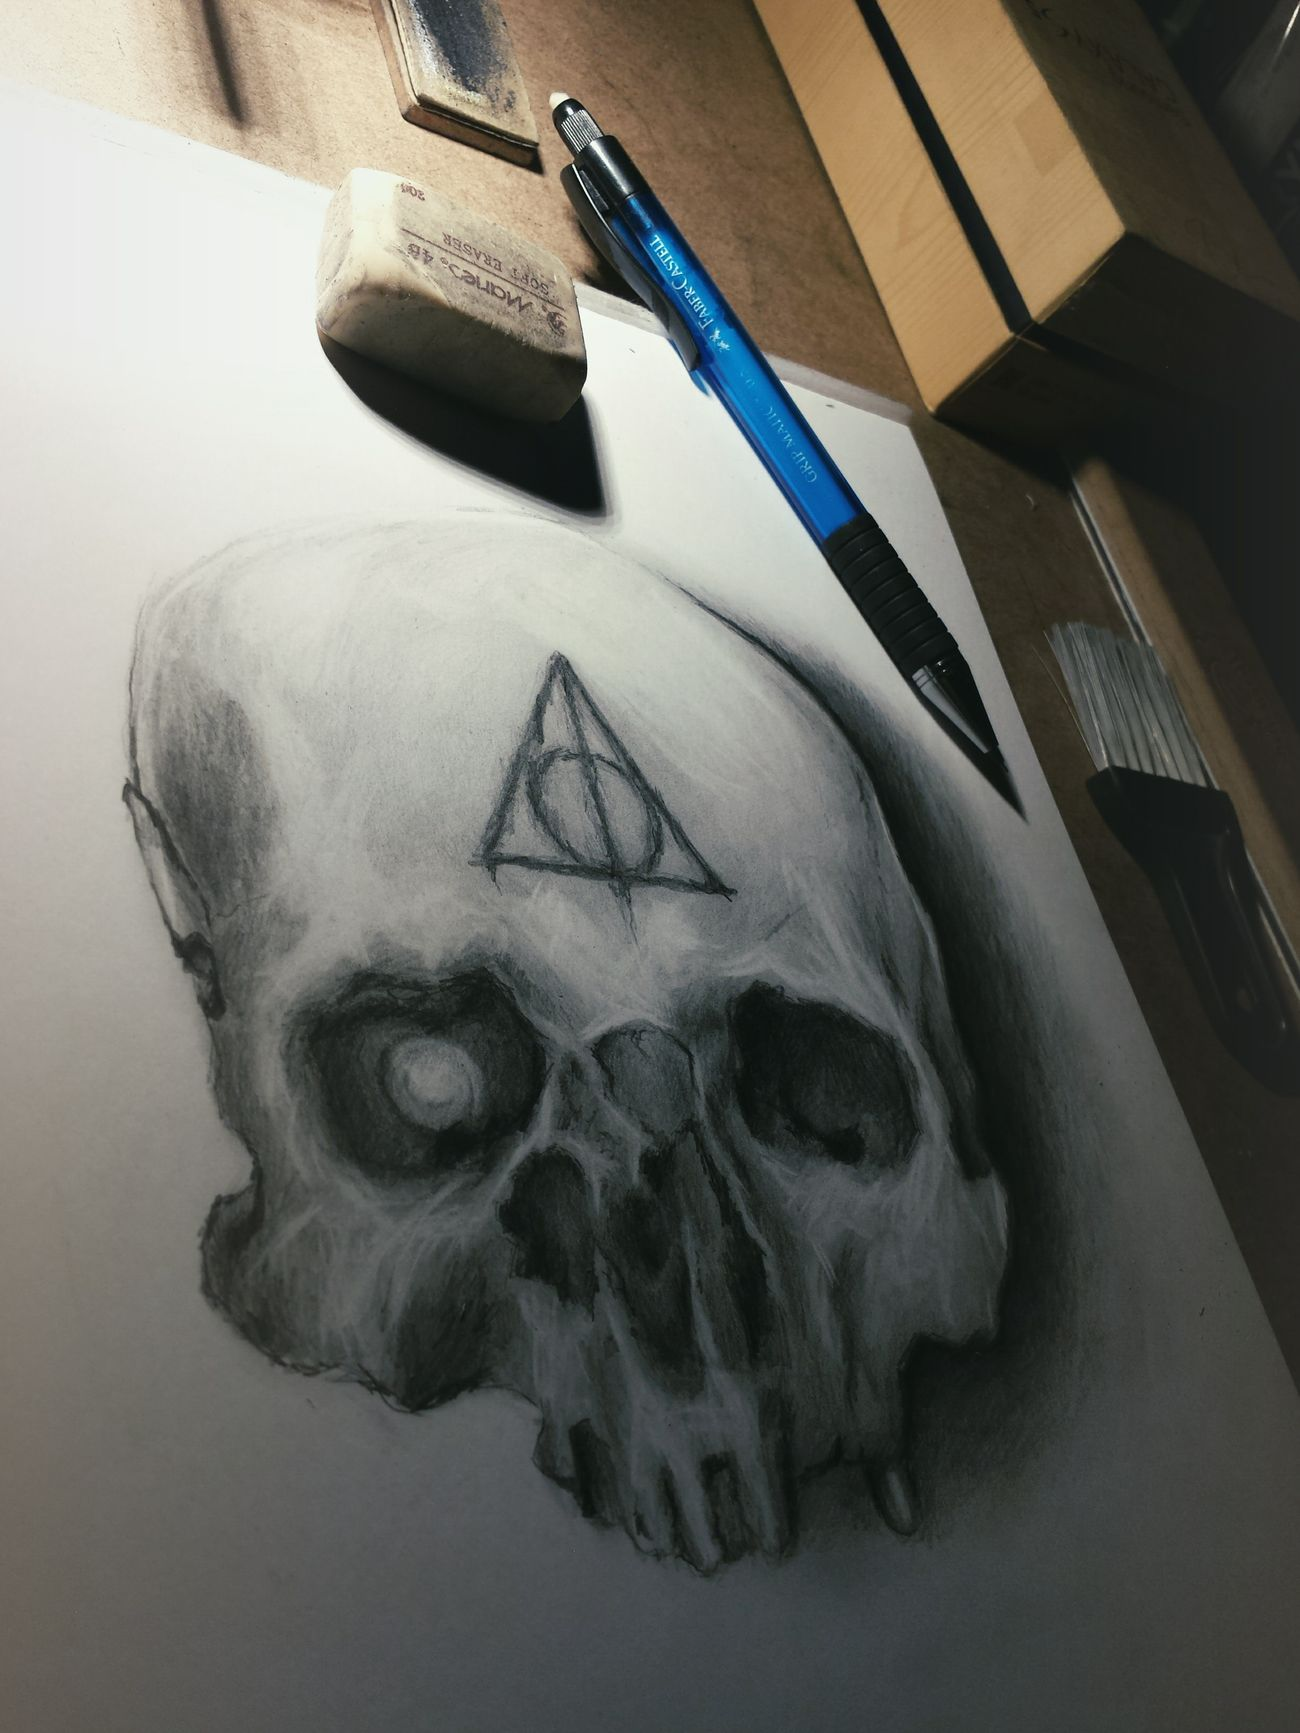 Skull sketch in progress. Art Picture Paper Check This Out Pencil Art, Drawing, Creativity Artsy Explore Drawing Creative ArtWork Design Sketches Sketchbook Sketching Draw Tattoos Sketch Horror Work My Artwork